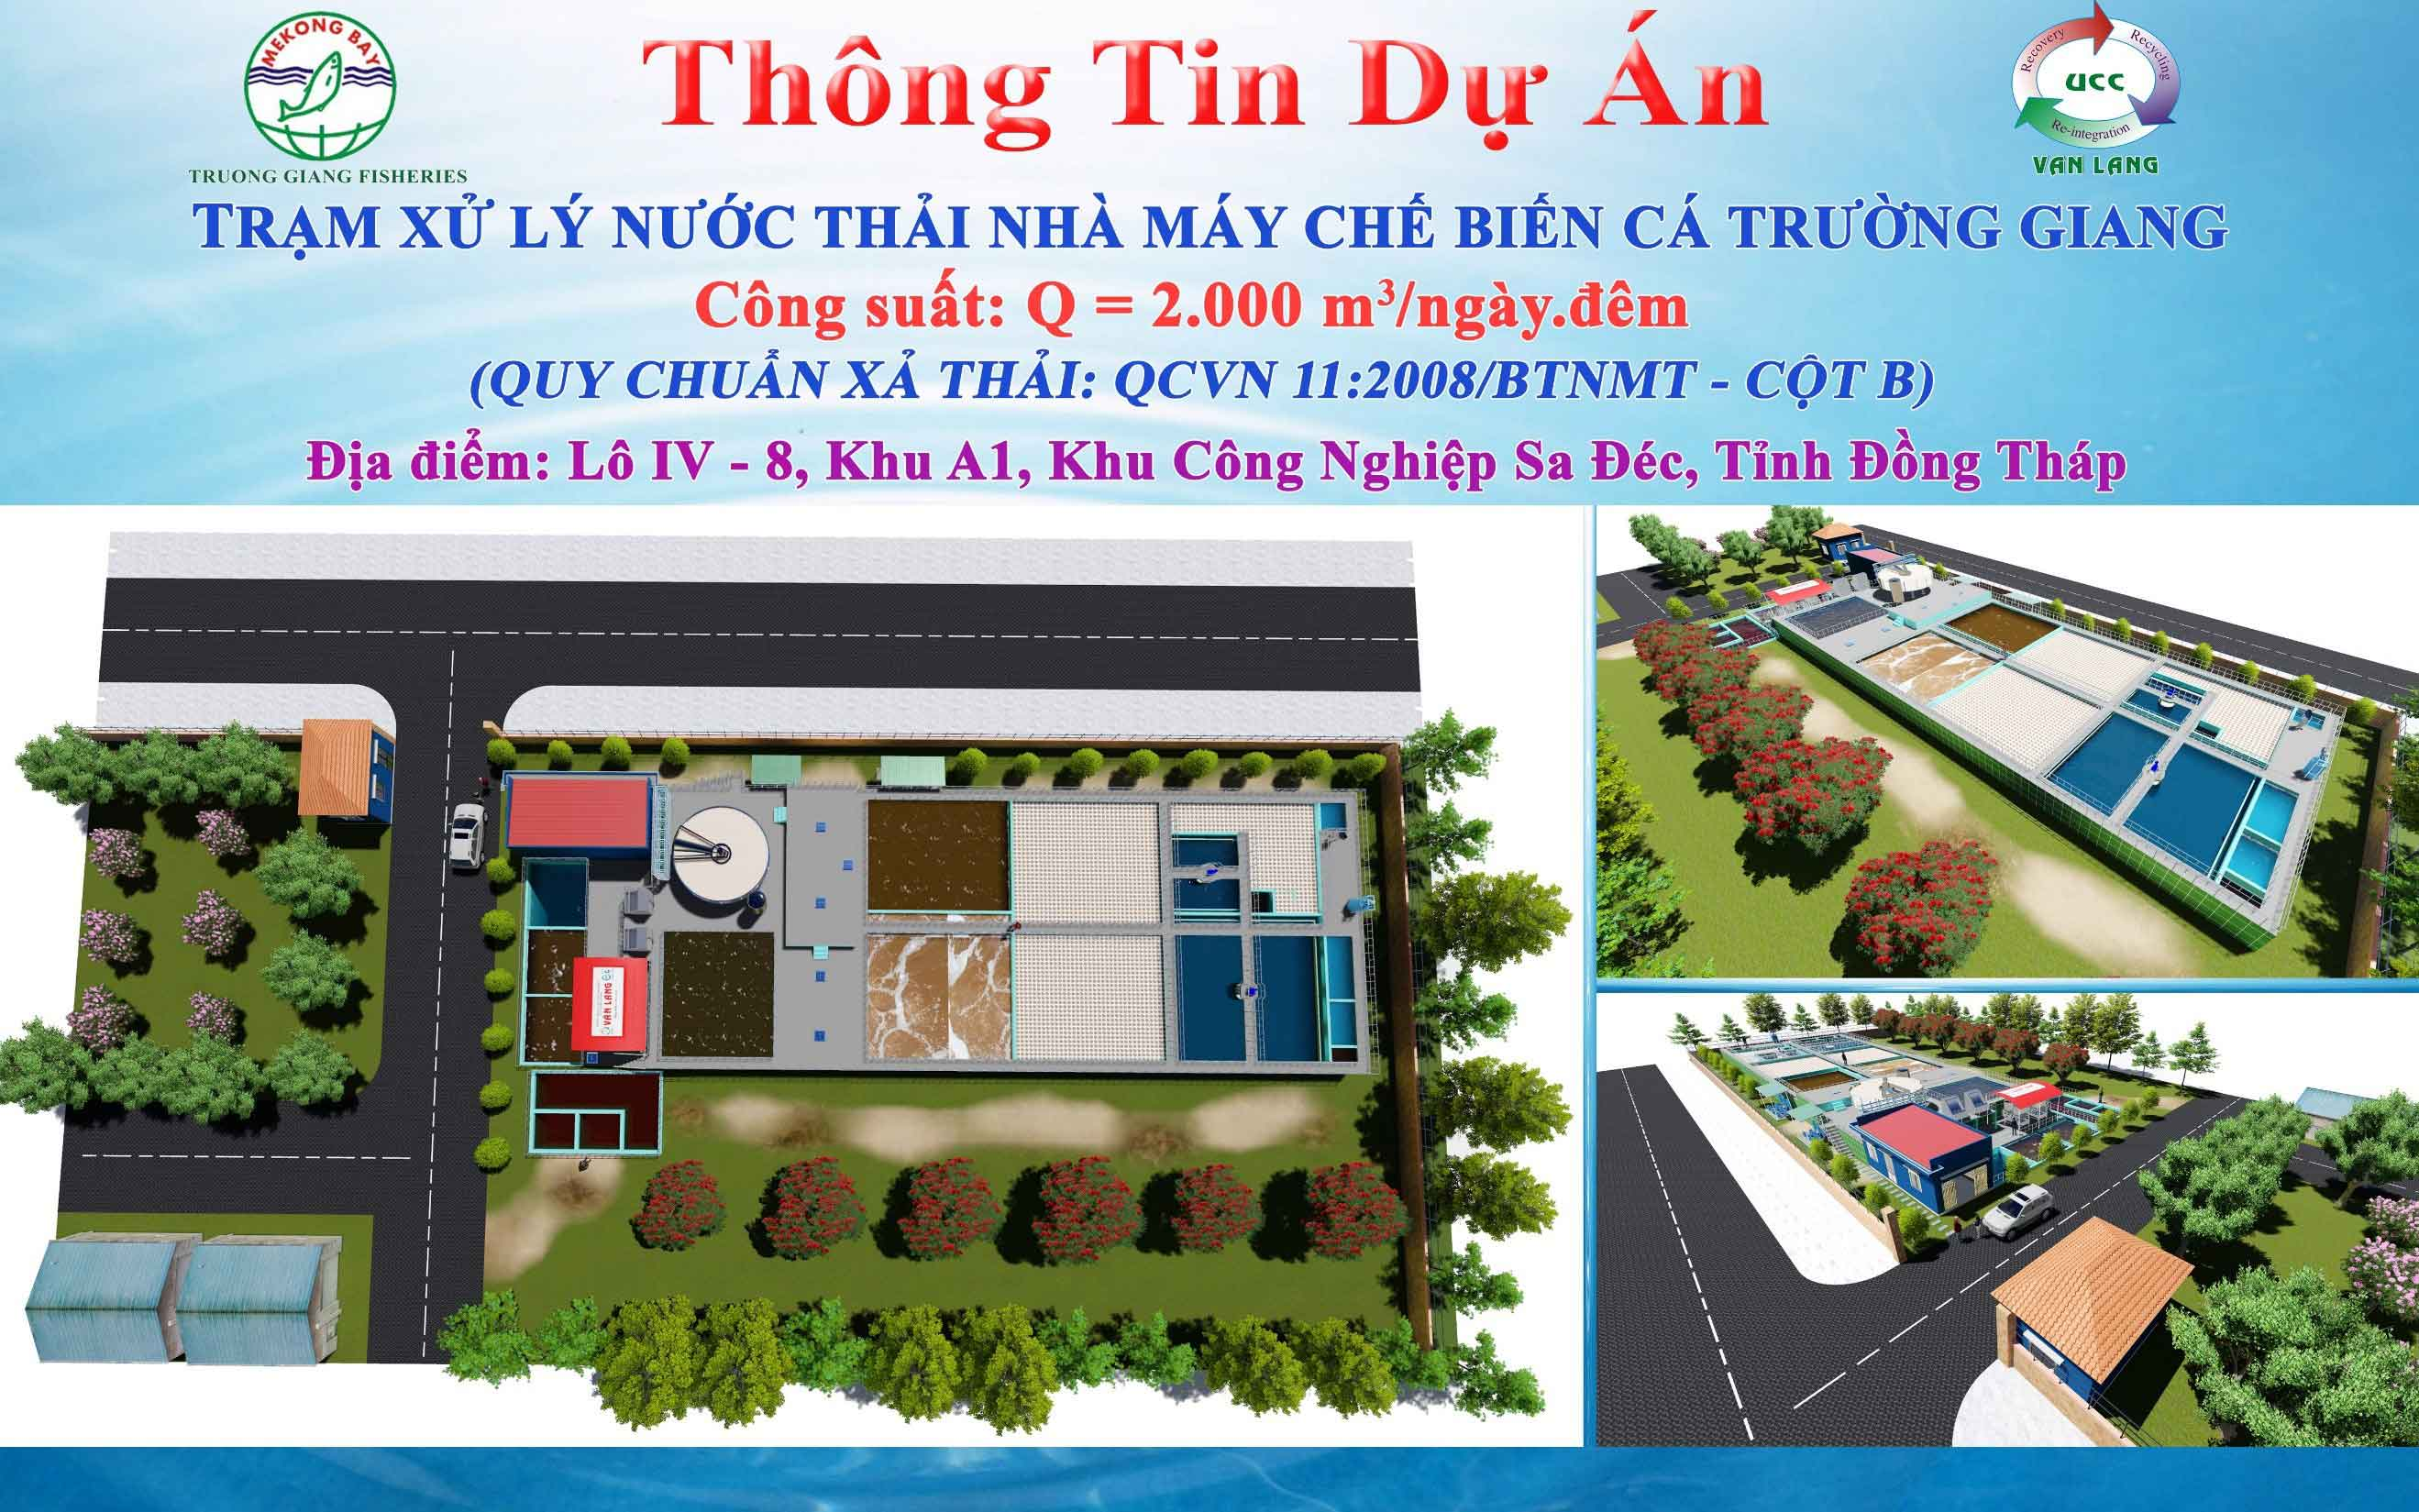 THE WASTEWATER TREATMENT PLANT  OF TRUONG GIANG SEAFOOD PROCESSING FACTORY